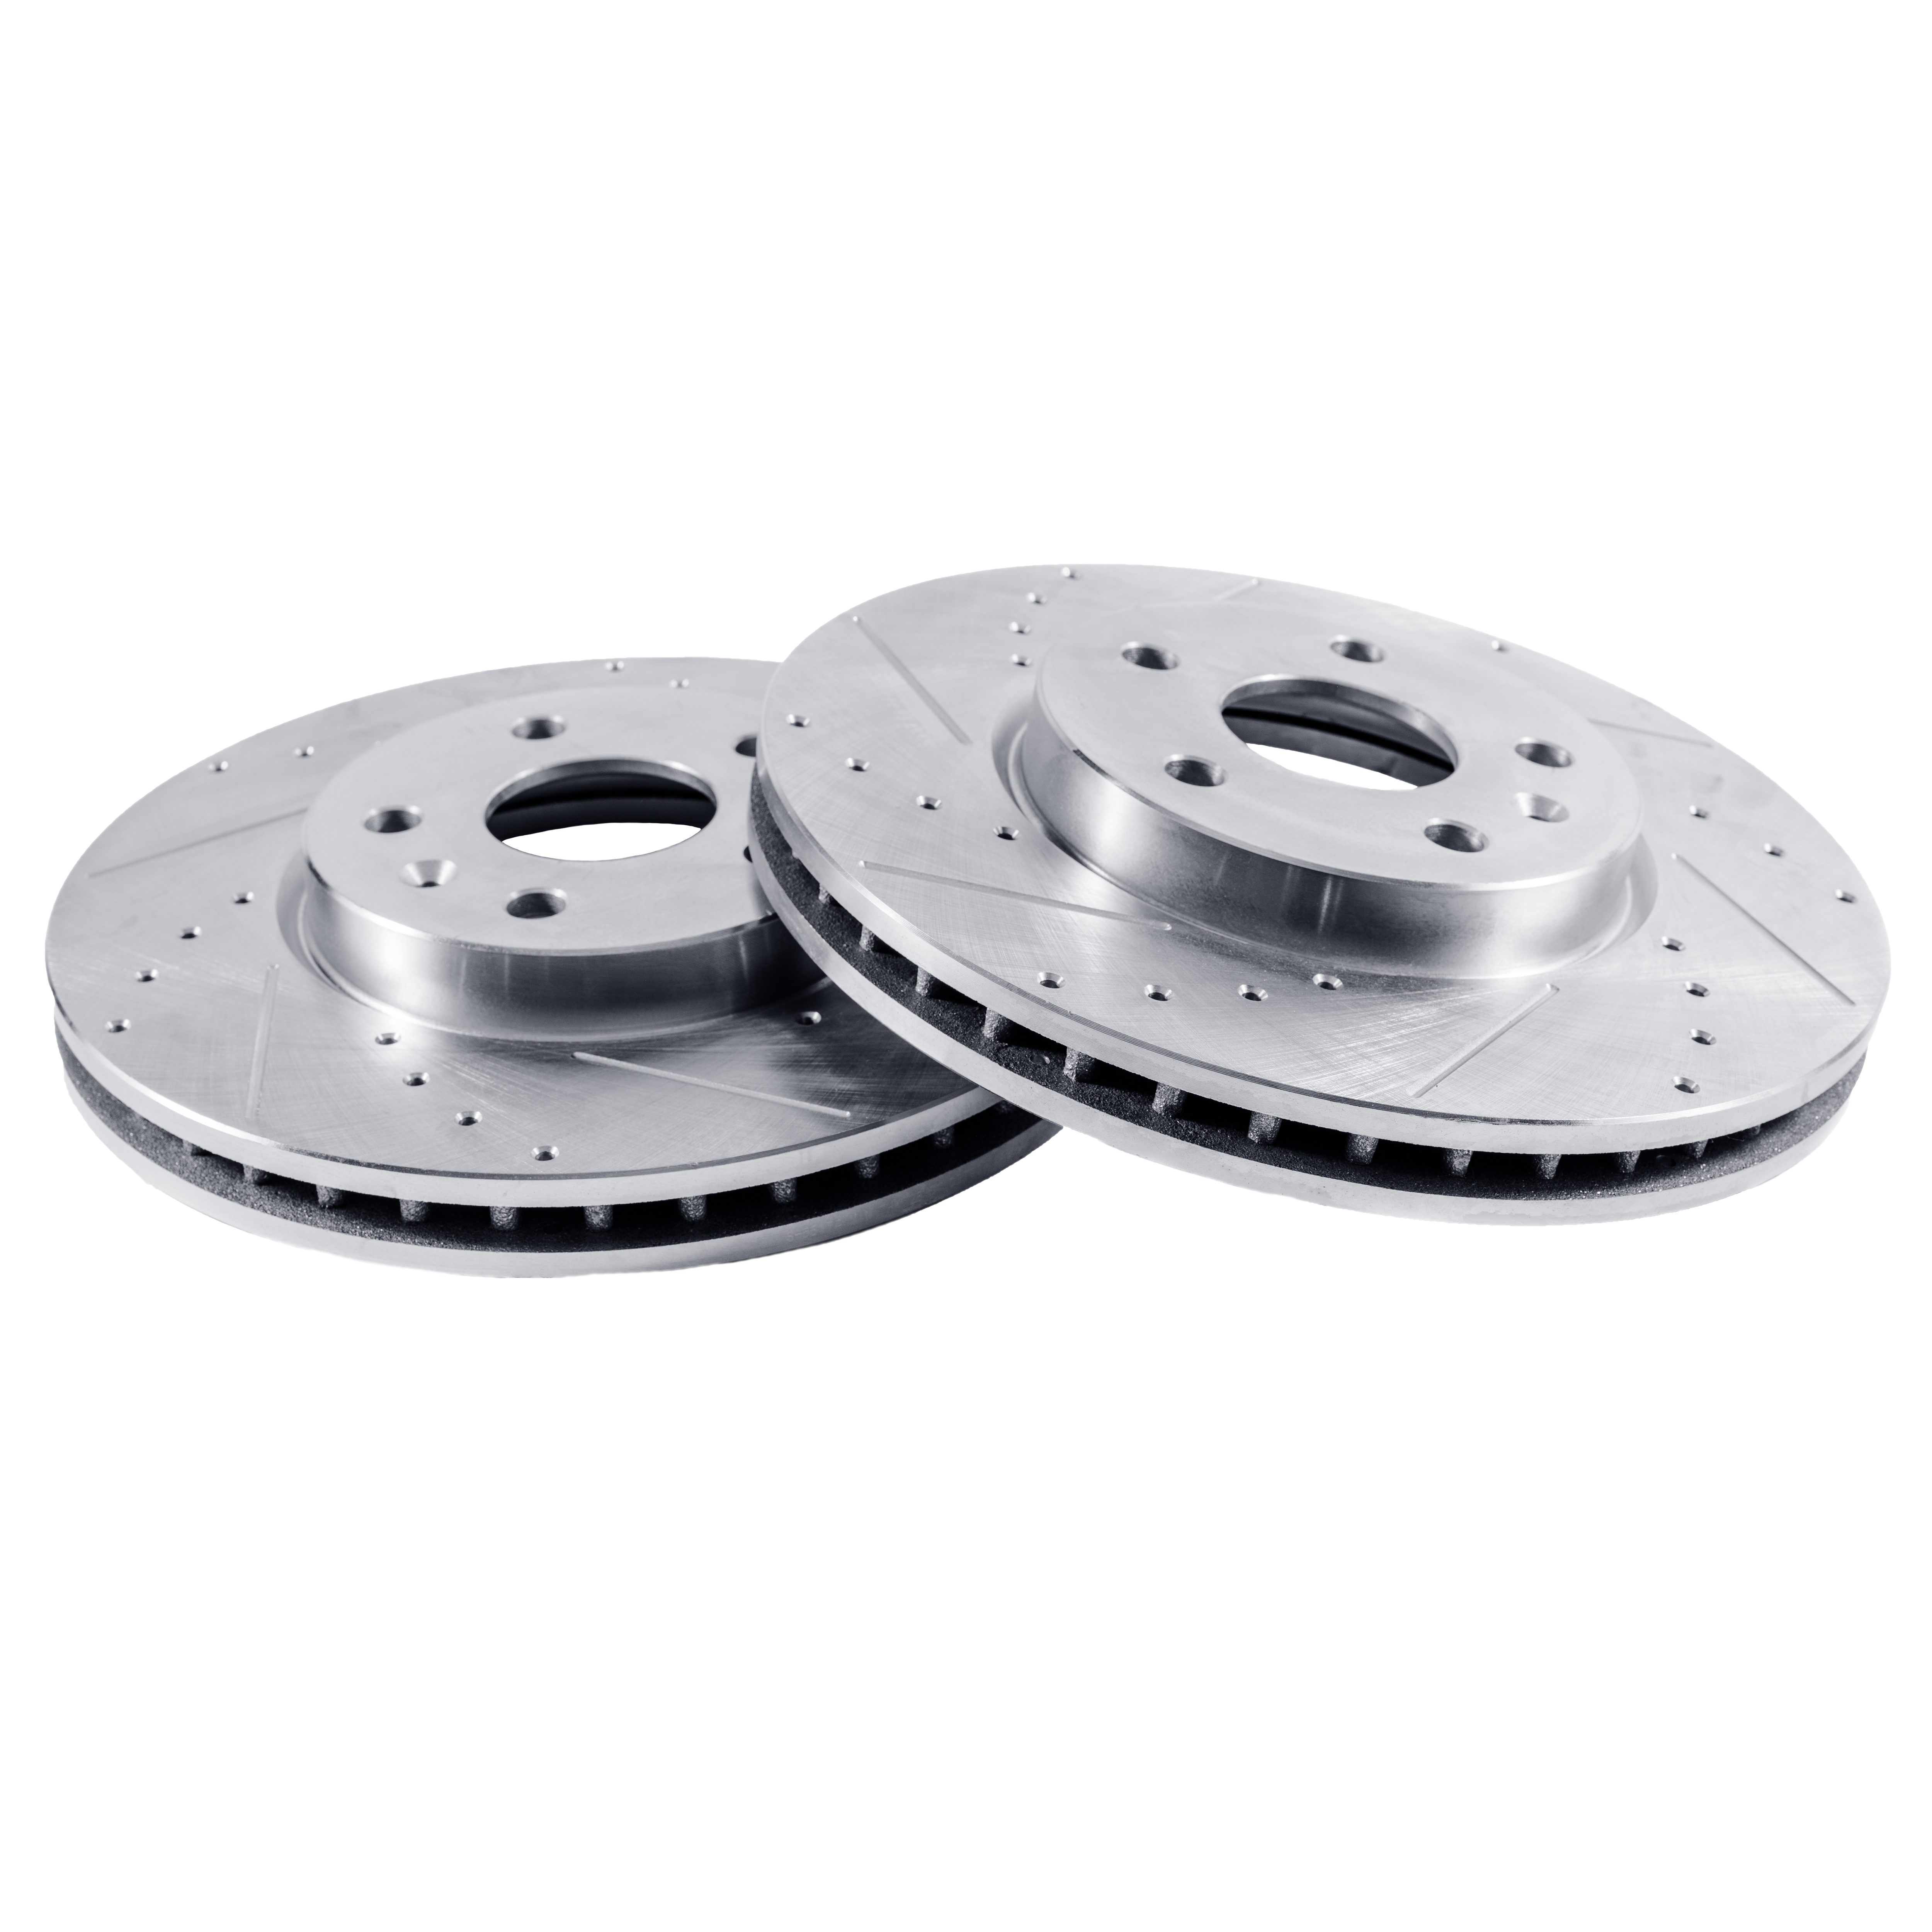 Check Fitment Chart FRONT Drilled and Slotted Brake Rotors Detroit Axle 12.60 320mm